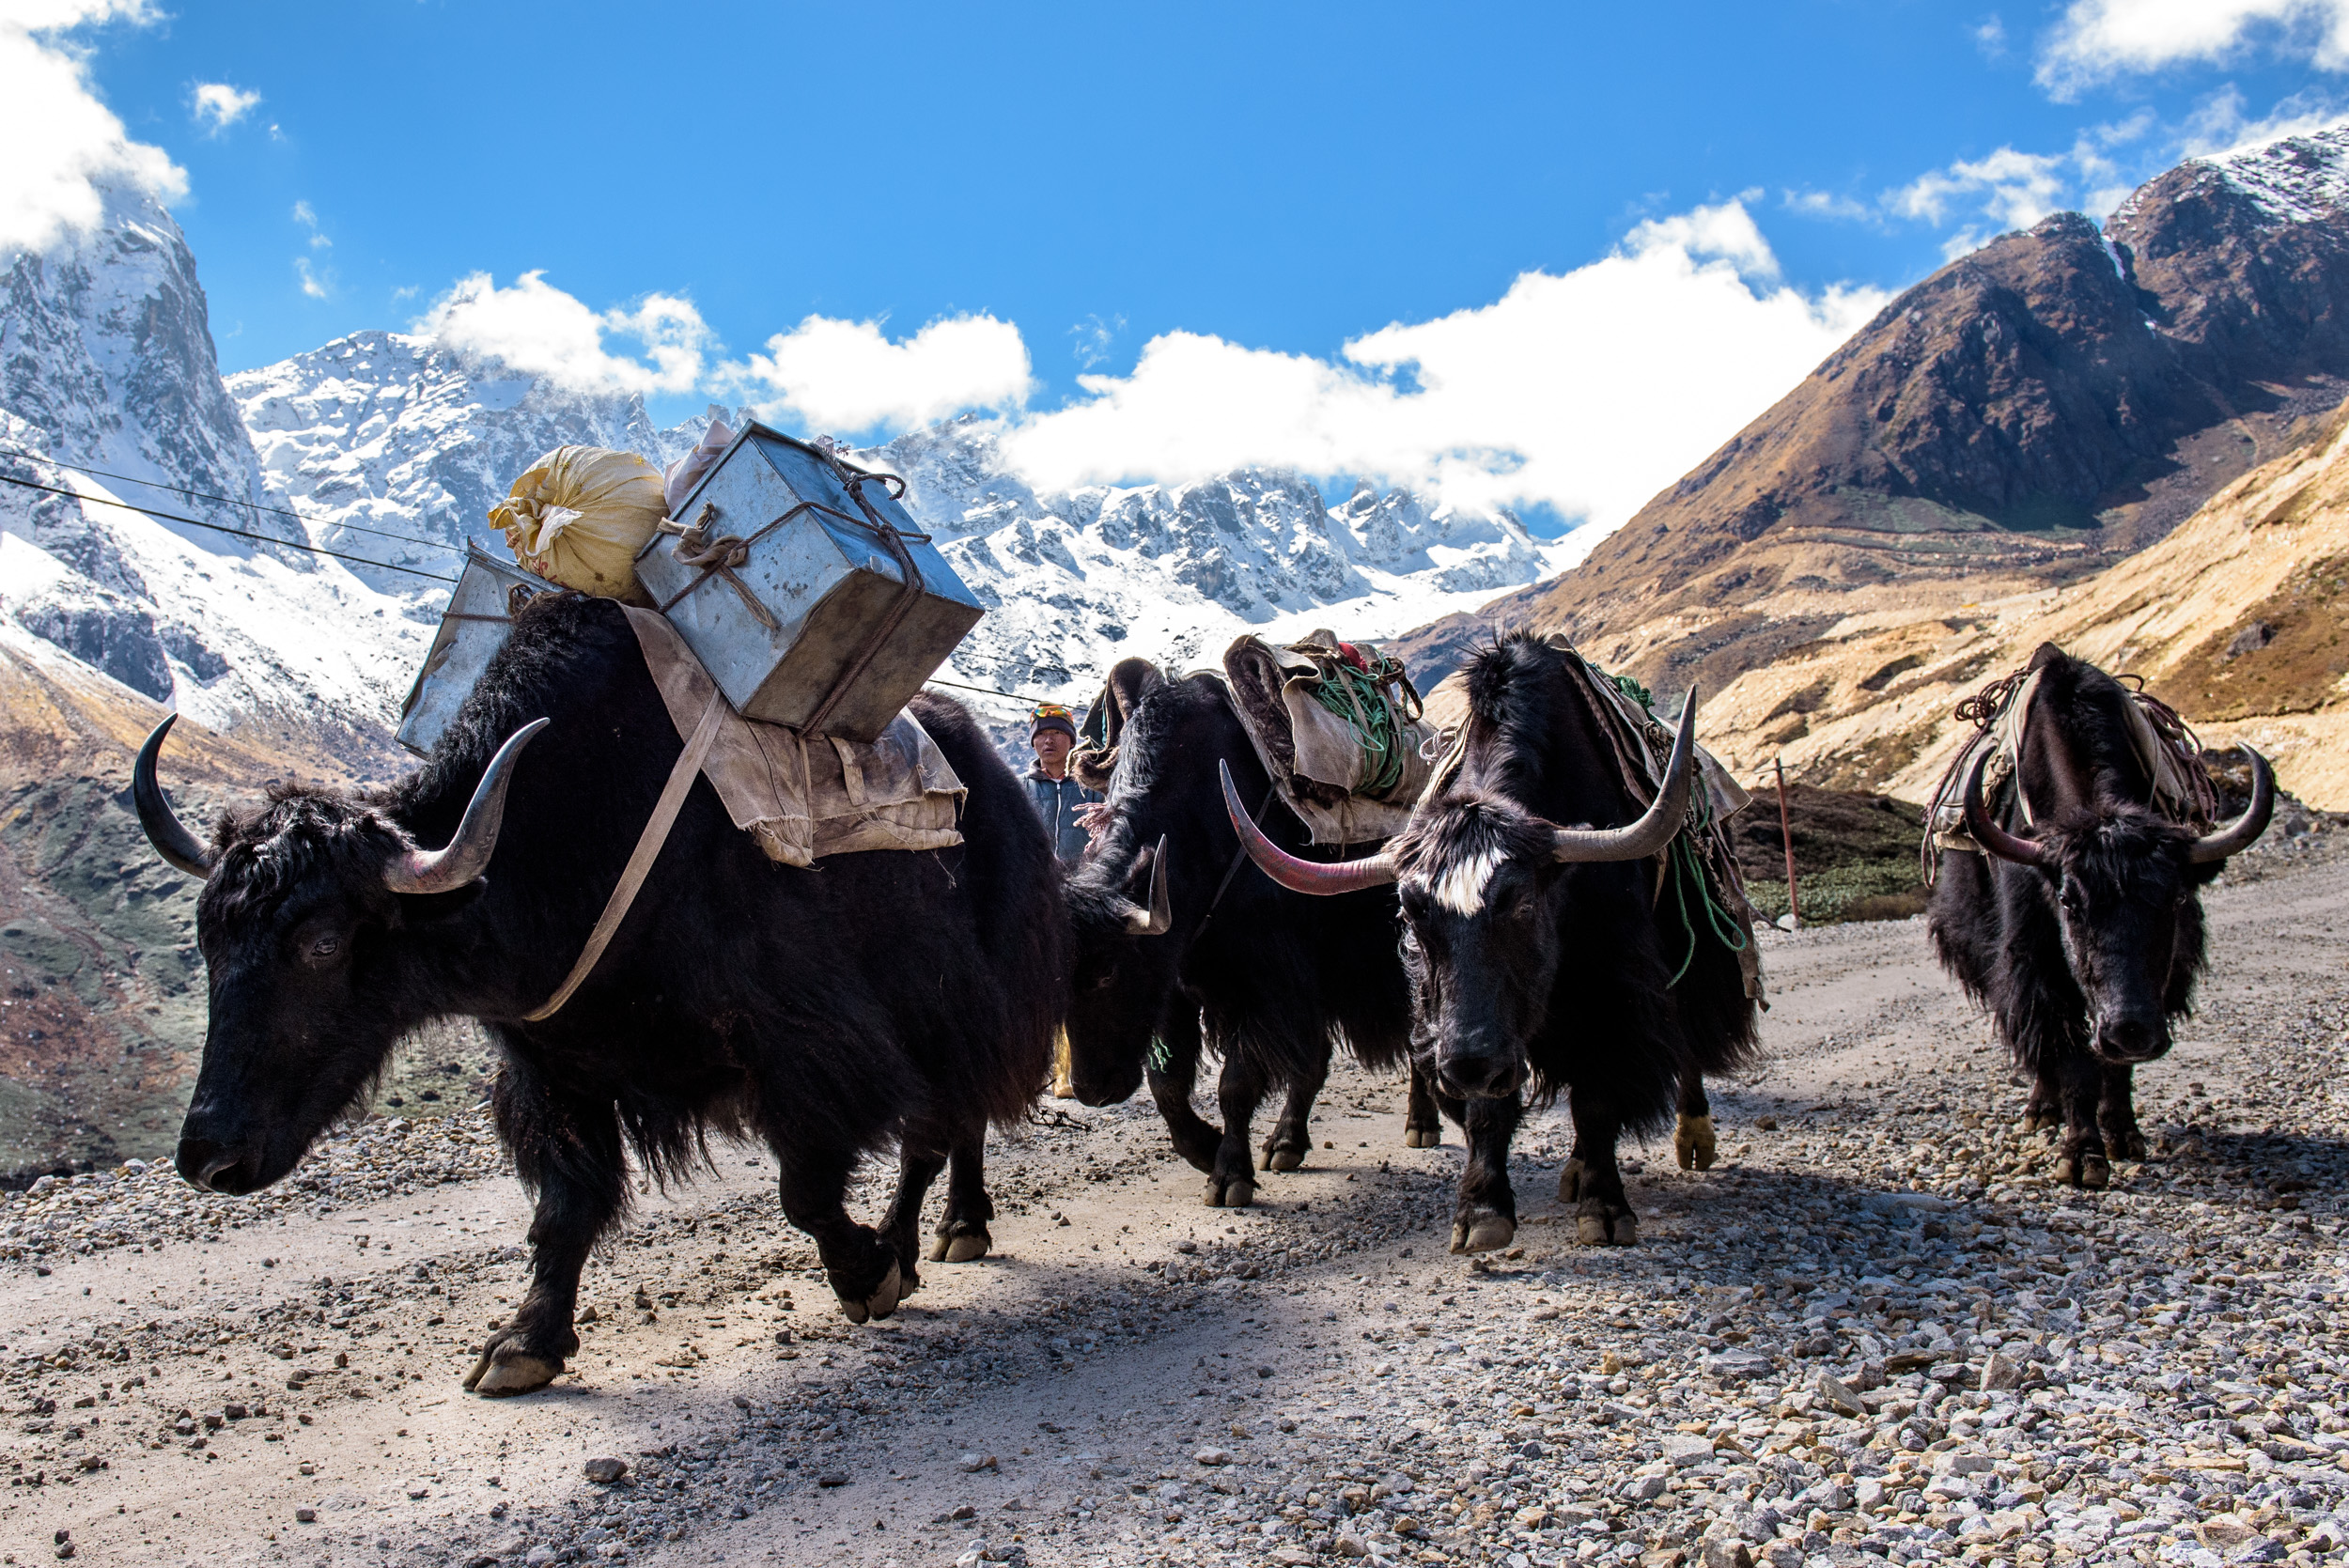 Yaks on their way to Thangu to get supplies for the army base in the Muguthang Valley, which is behind the mountains in the background.